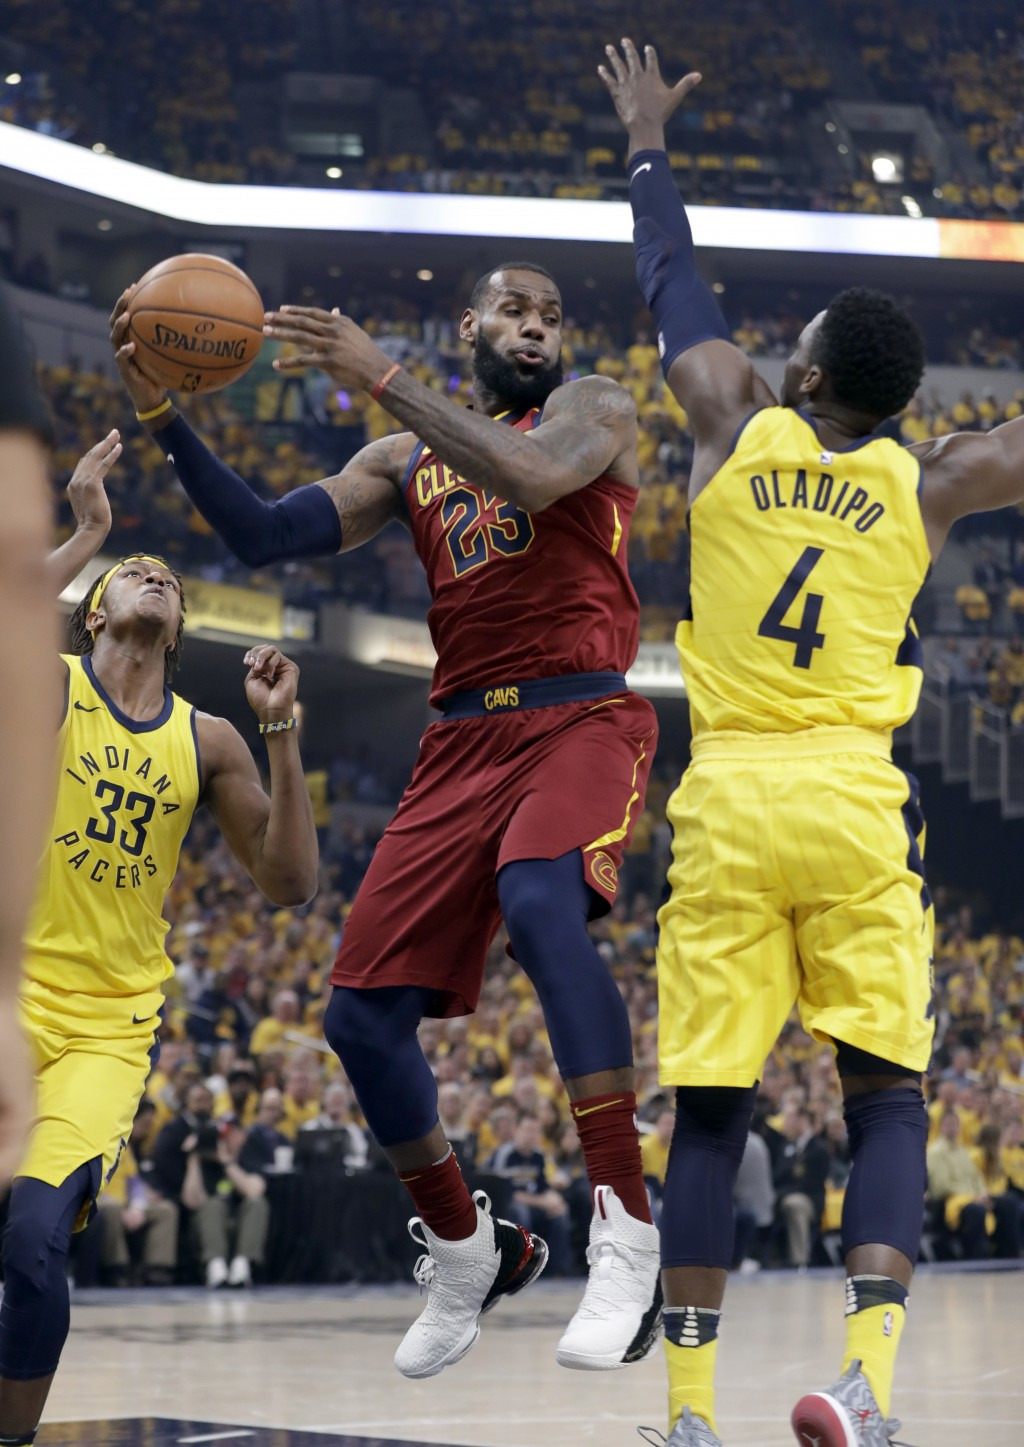 Cleveland Cavaliers' LeBron James (23) passes as Indiana Pacers' Victor Oladipo (4) and Myles Turner (33) defend during the first half of Game 6 of a ...